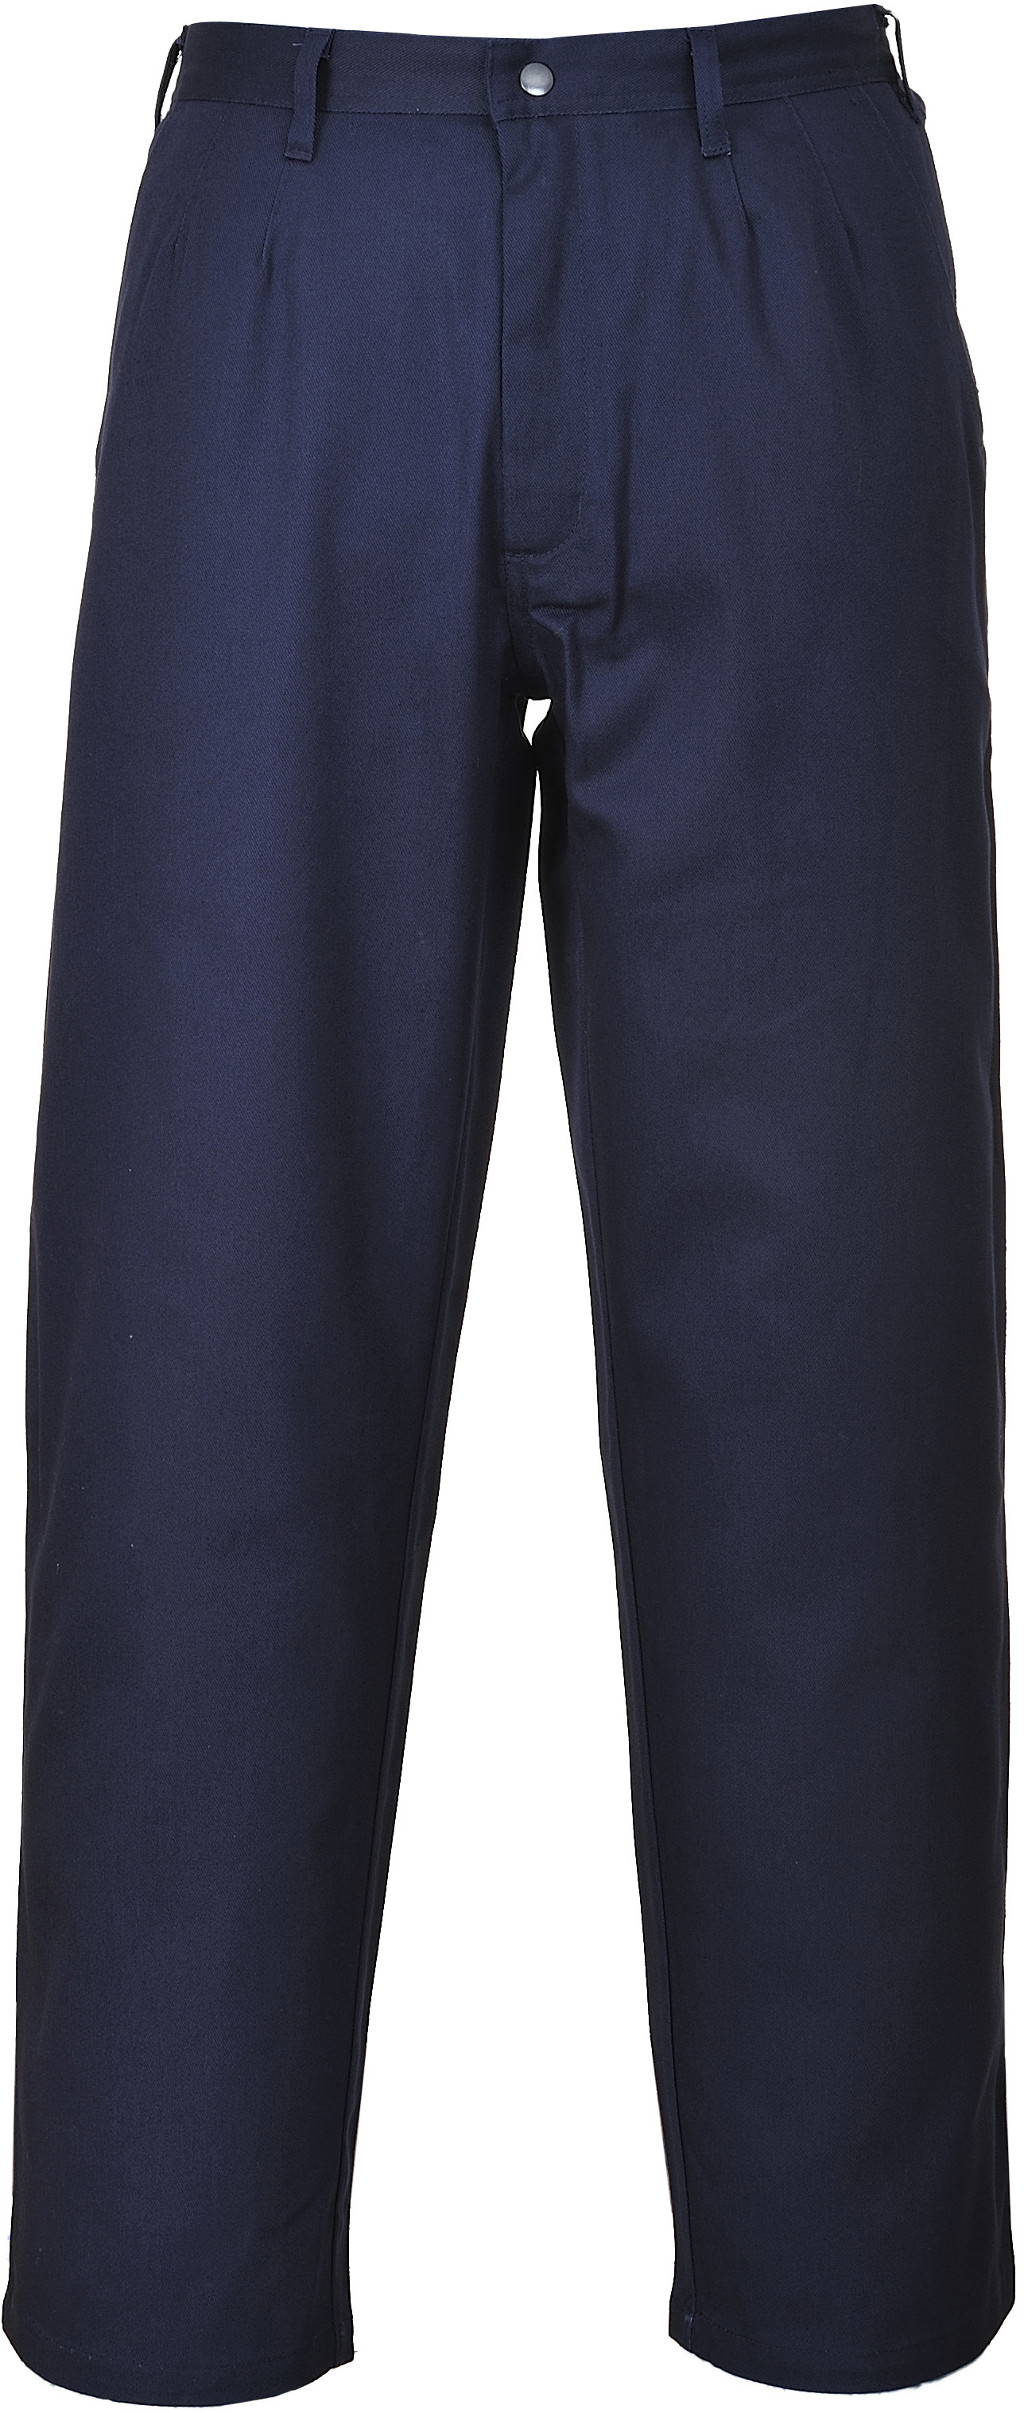 92c017347839 Portwest Bizflame Pro Trousers  PTW870  - £26.93   Safety Equipment ...